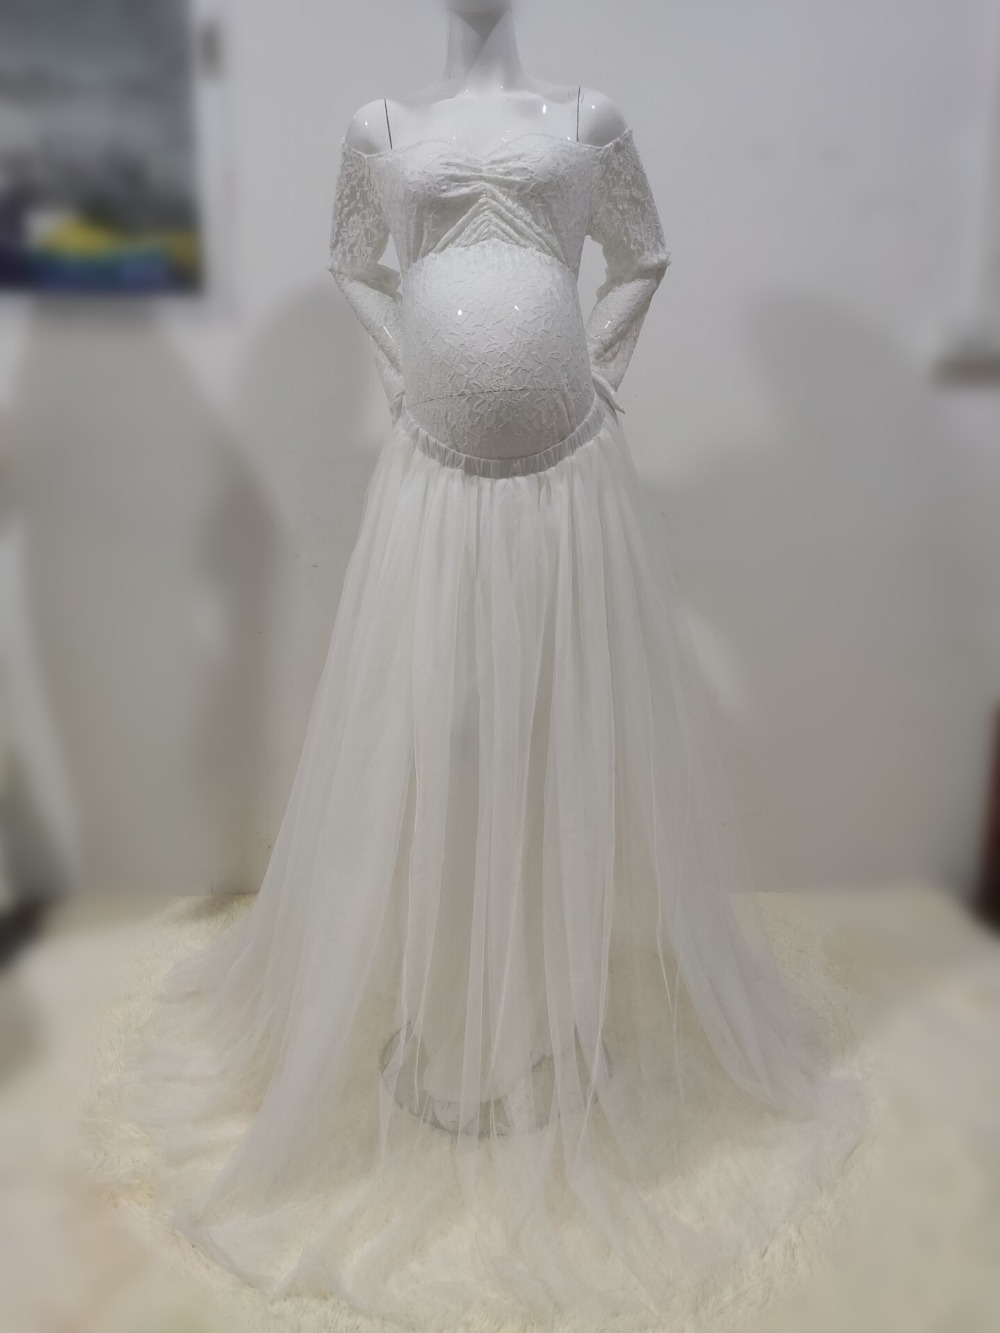 Sexy Lace Maternity Photography Props Long Dress Baby Shower Fancy Pregnancy Dress Photo Shoot For Pregnant Women Mesh Maxi Gown (20)